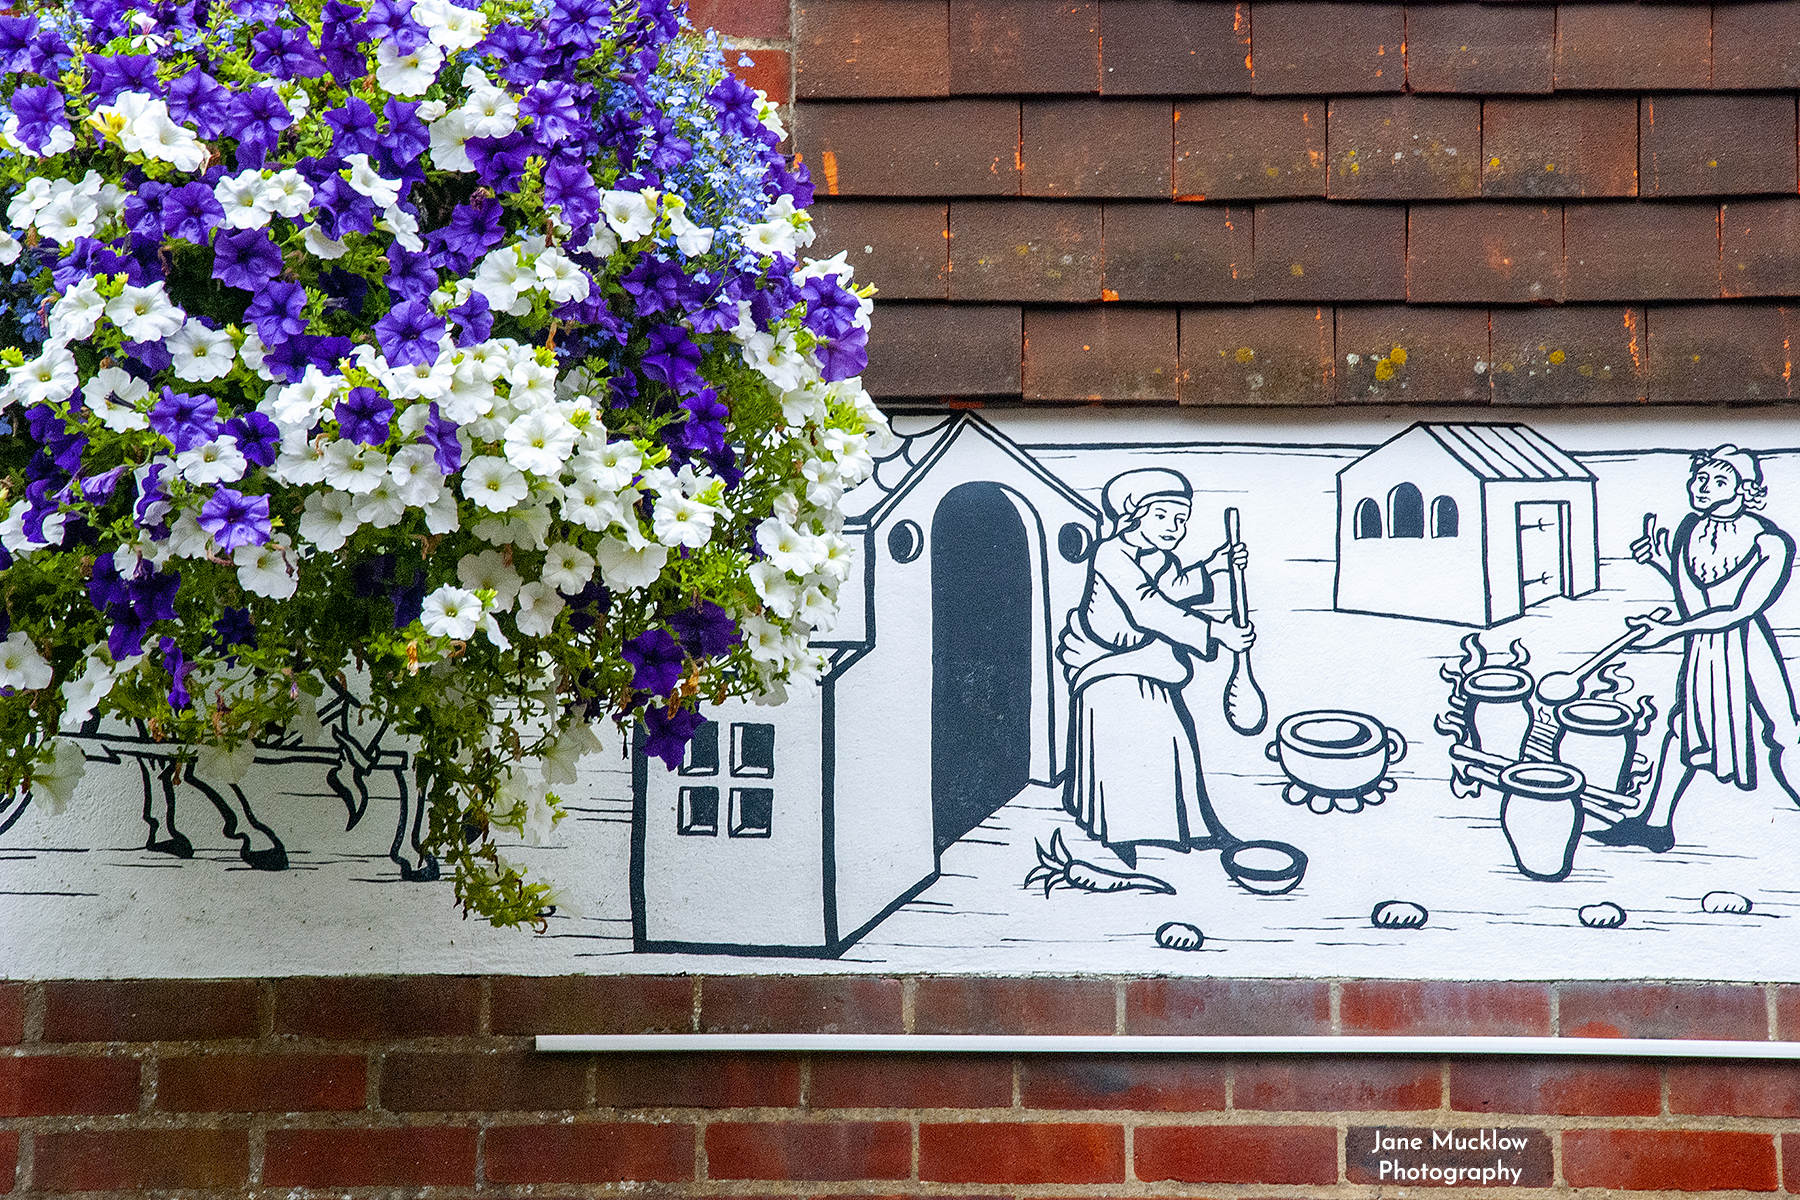 Photo of a flower basket in the Shambles, Sevenoaks, by Jane Mucklow